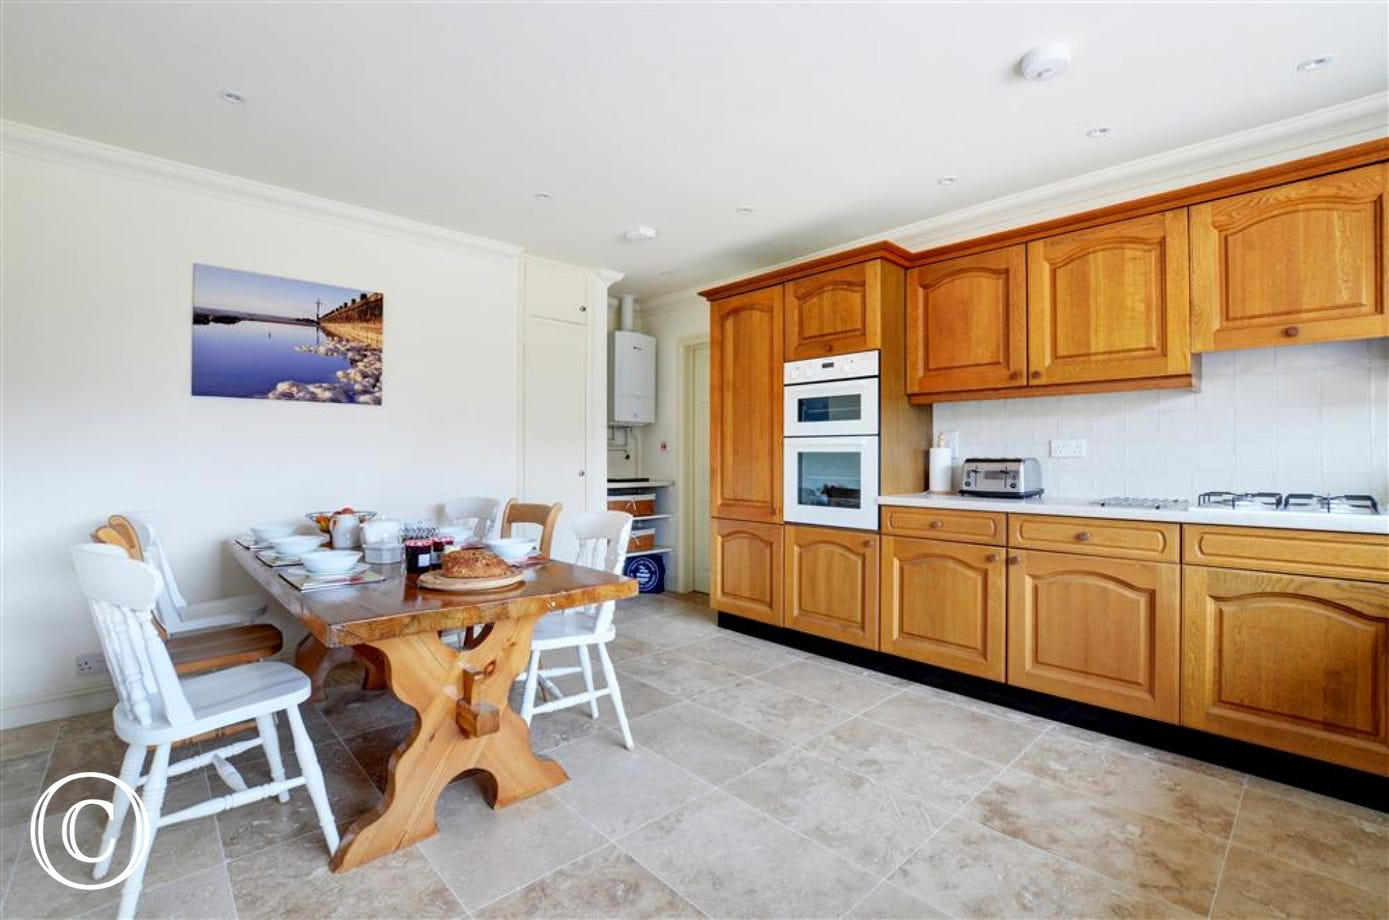 Spacious kitchen with seating area